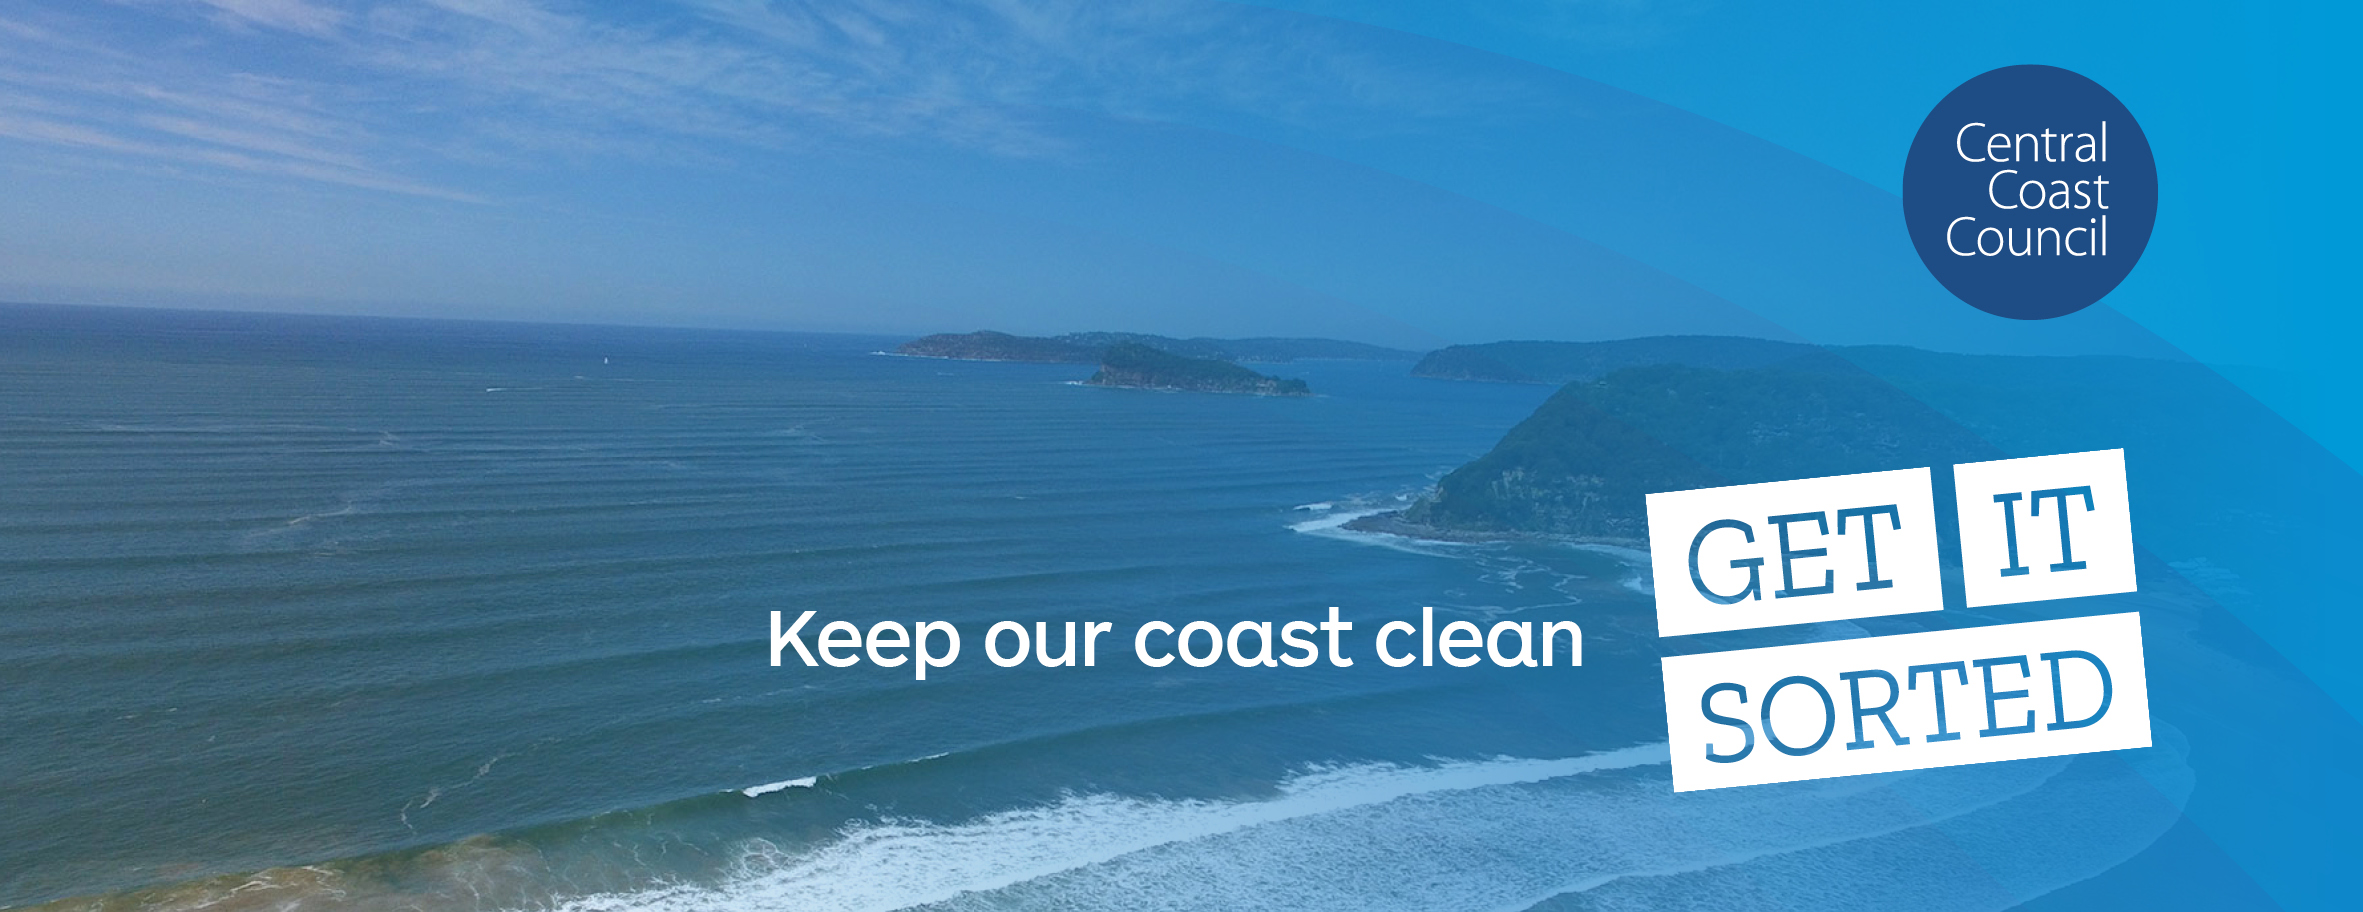 5206_1coast_home_banner_KeepCoastClean.jpg